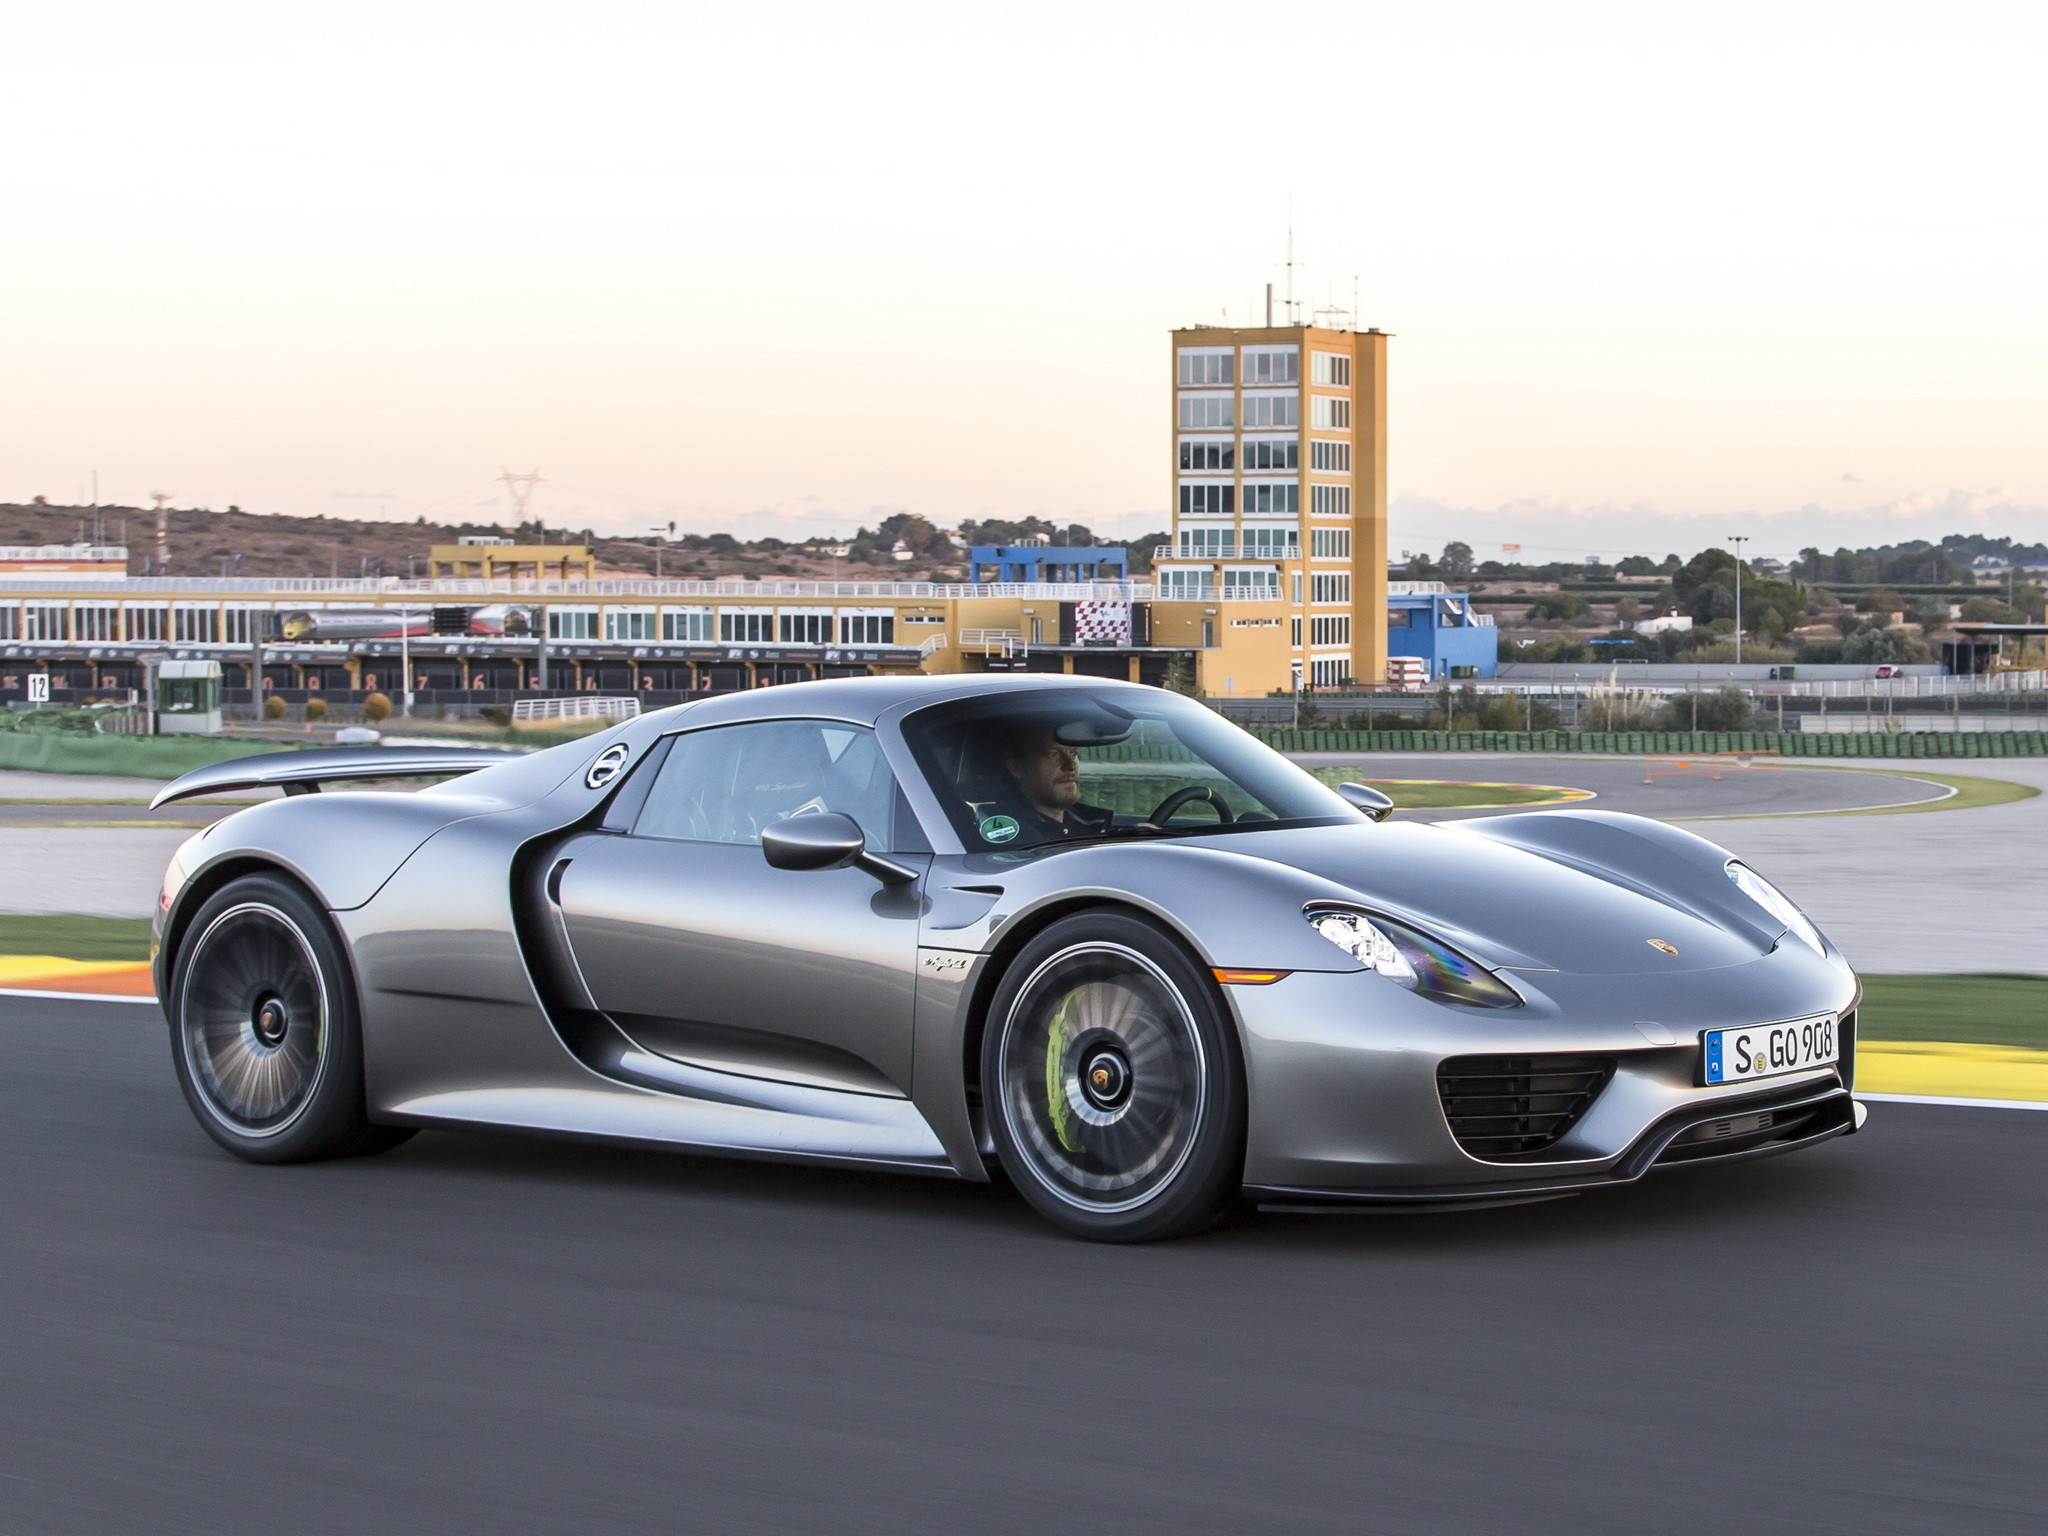 2048x1536 2014 Porsche 918 Spyder Supercar R Wallpaper 194043